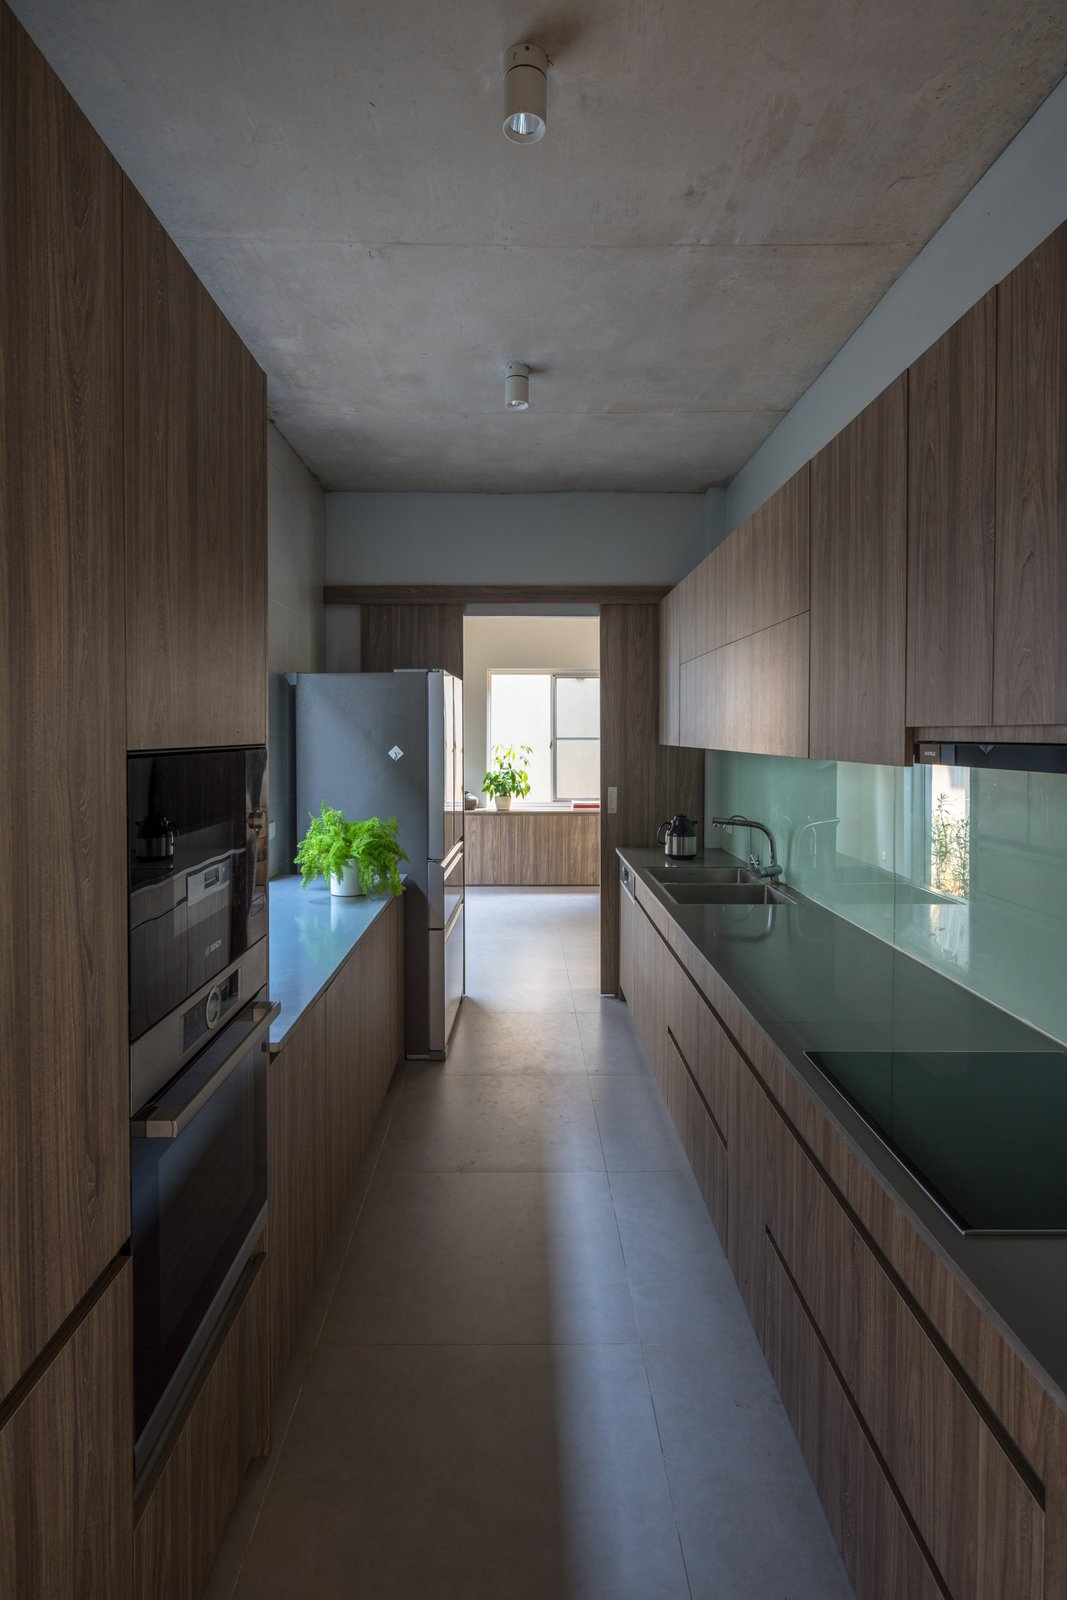 Kitchen, Ice Maker, Quartzite Counter, Dishwasher, Wood Cabinet, Microwave, Refrigerator, Ceiling Lighting, Glass Tile Backsplashe, Wall Oven, Range Hood, Cooktops, Undermount Sink, and Ceramic Tile Floor The kitchen is separated from the common living space, suitable for the needs of the family.  Ninh Binh House